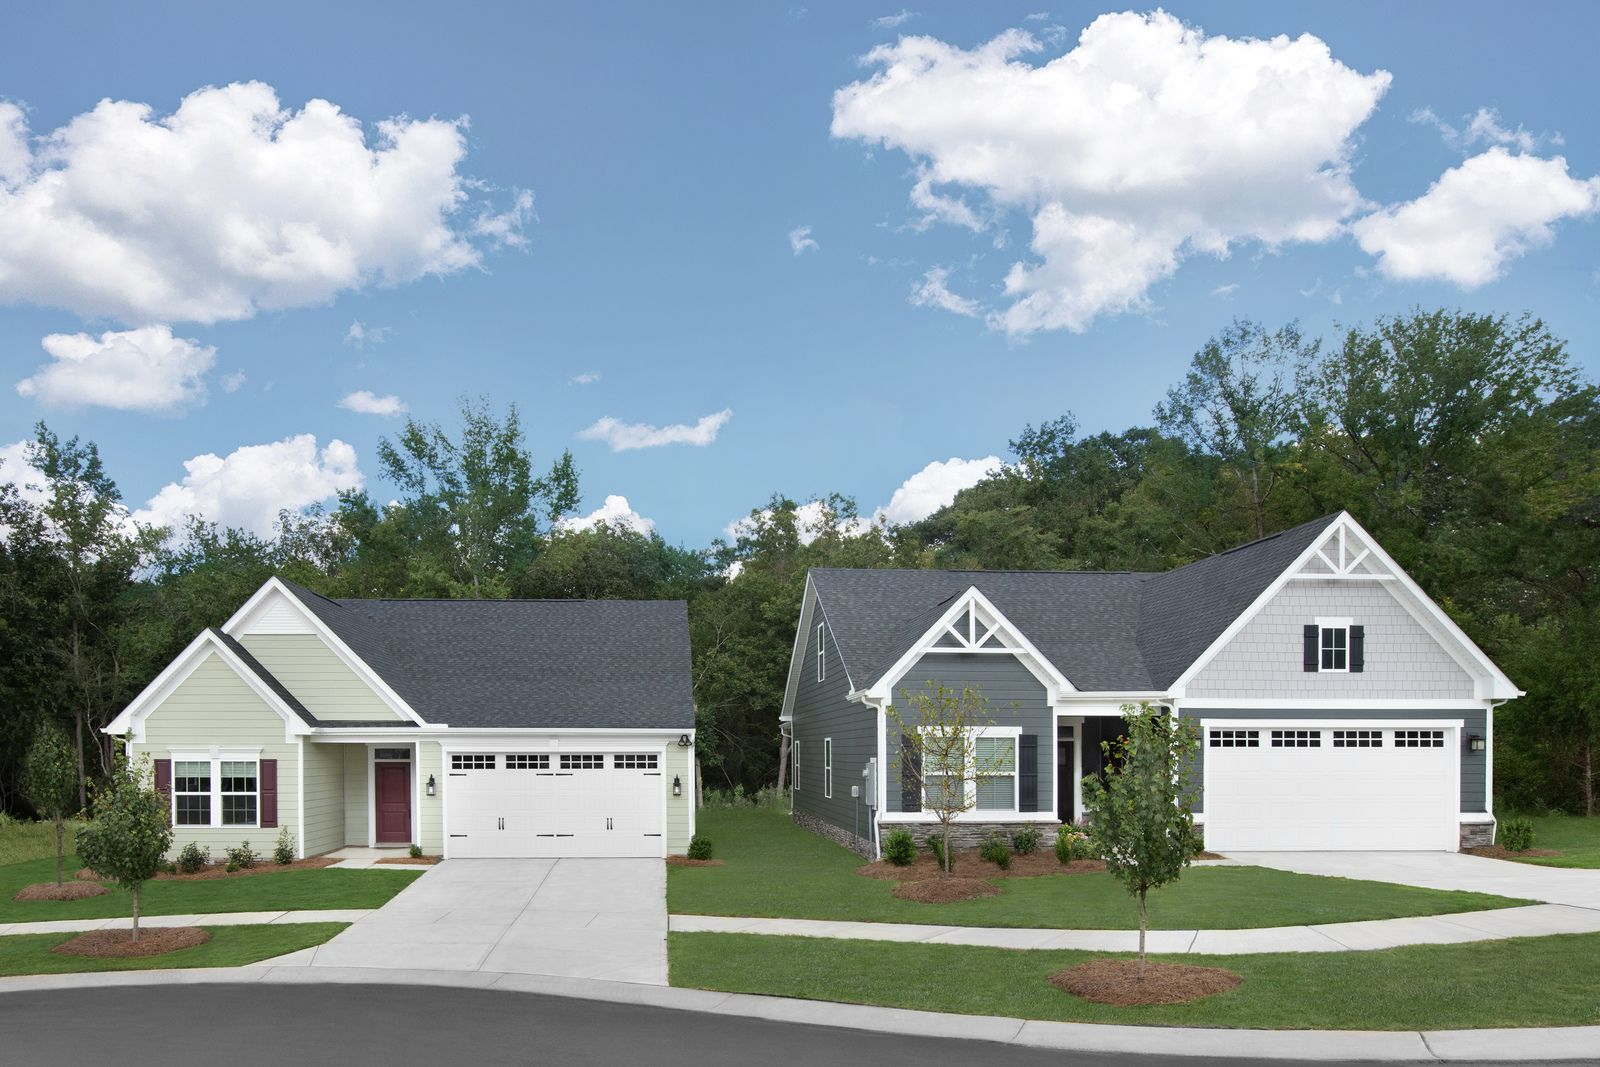 Affordable Homes With HardiePlank and Many Included Features:Located off Hwy 601, thesenew homeshave the features you are looking for already included!Click here to schedule a visit!